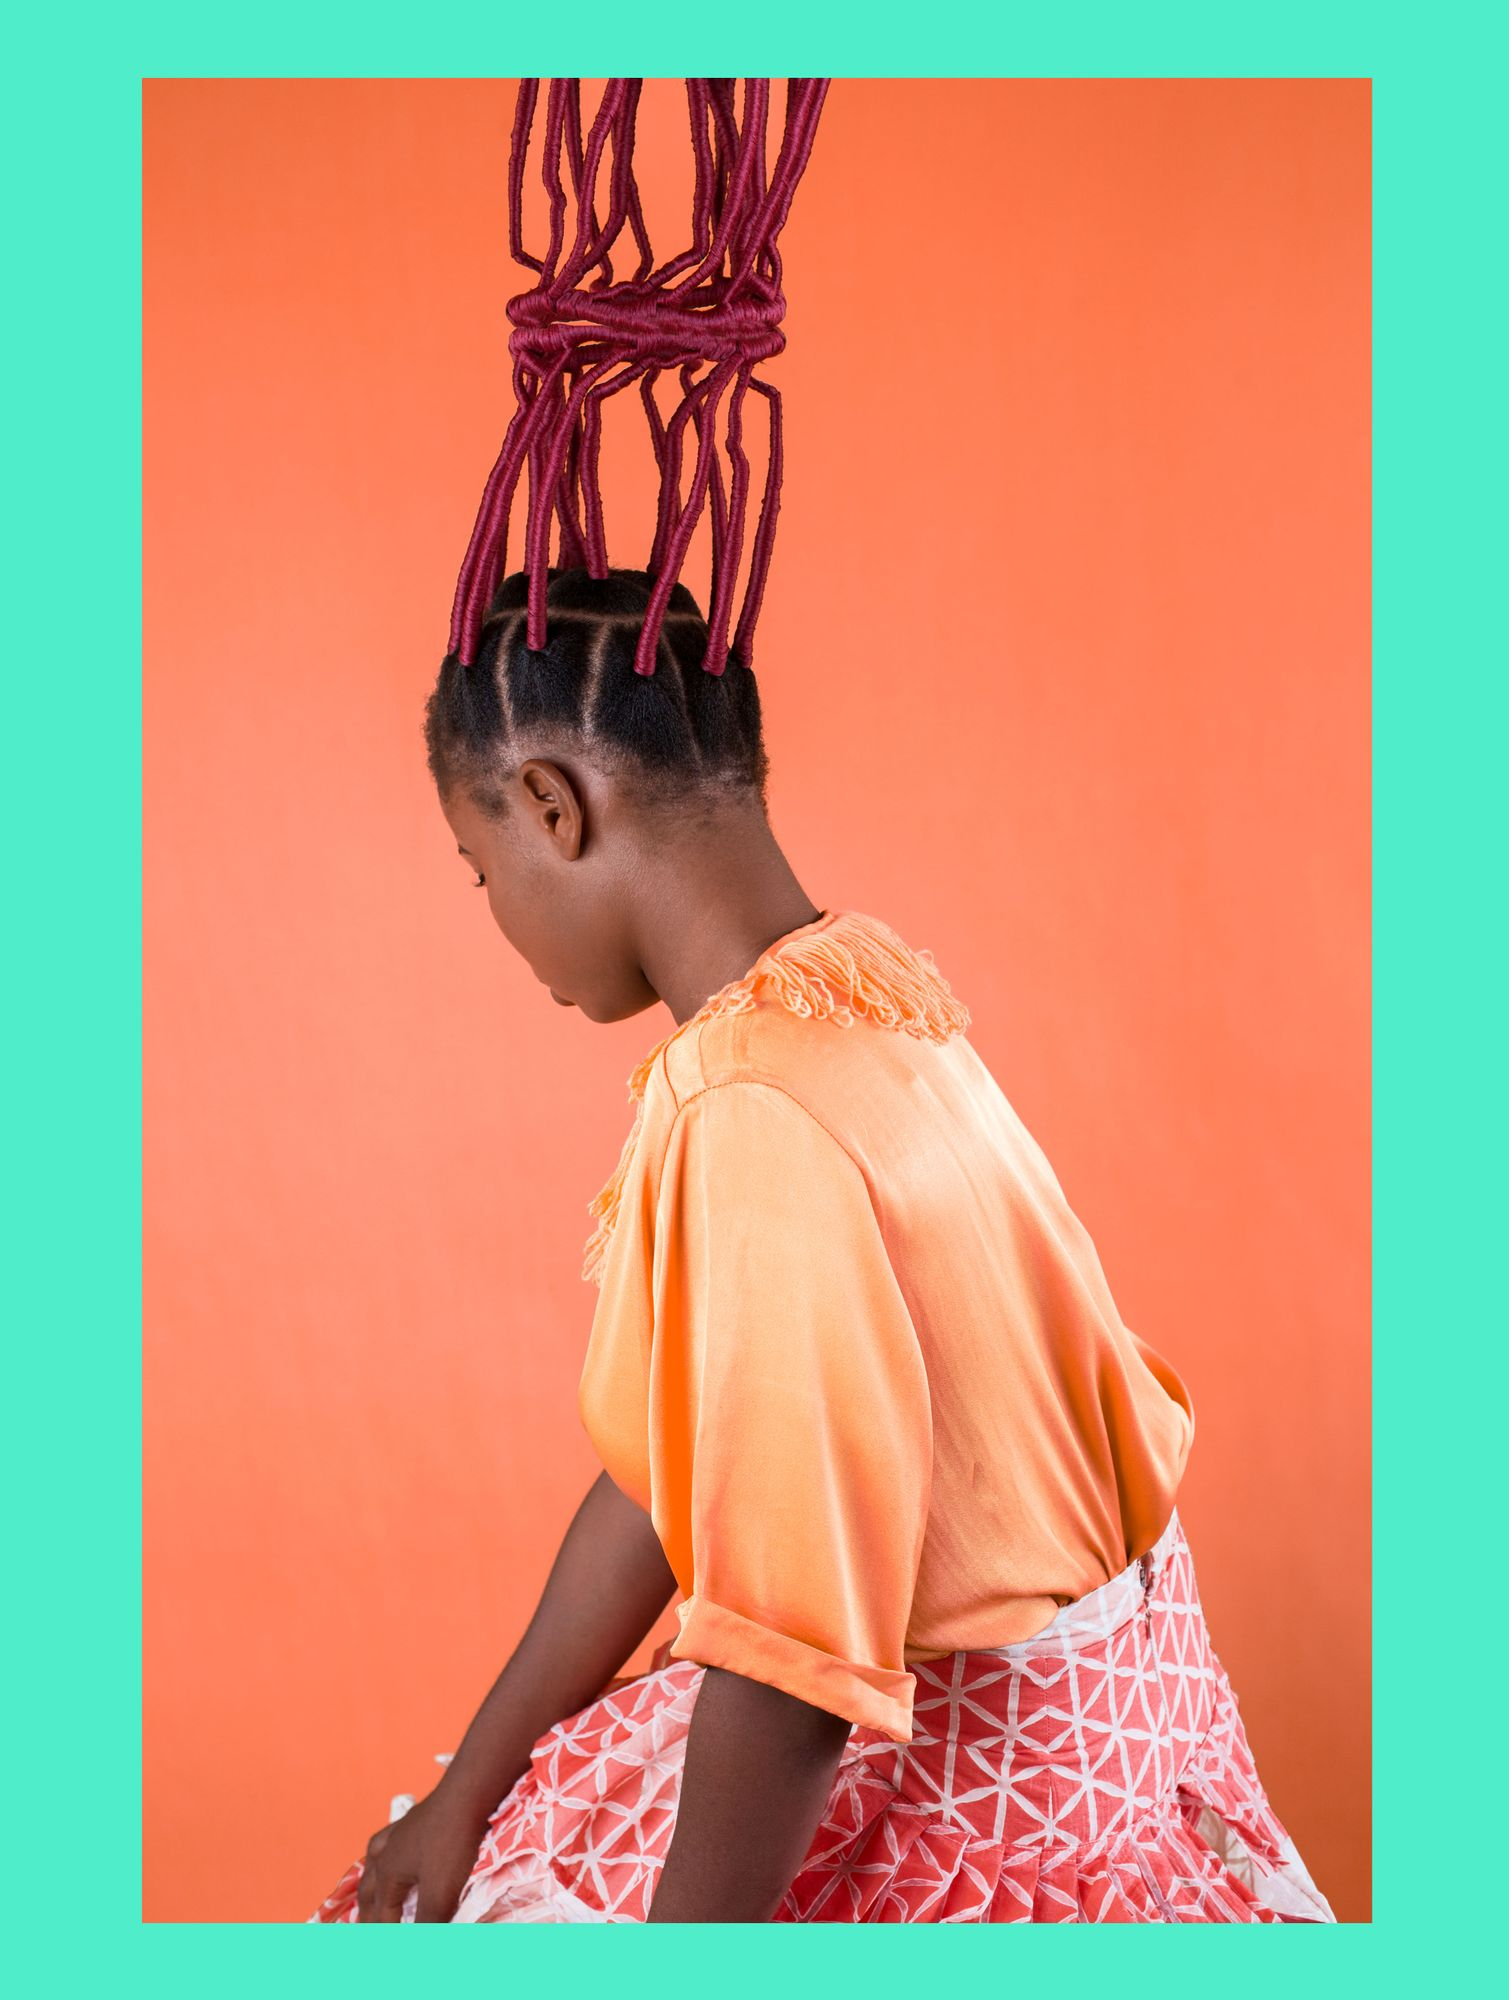 Chroma. Image: Medina Dugger. Open Series Winner, Magnum and LensCulture Photography Awards 2017.